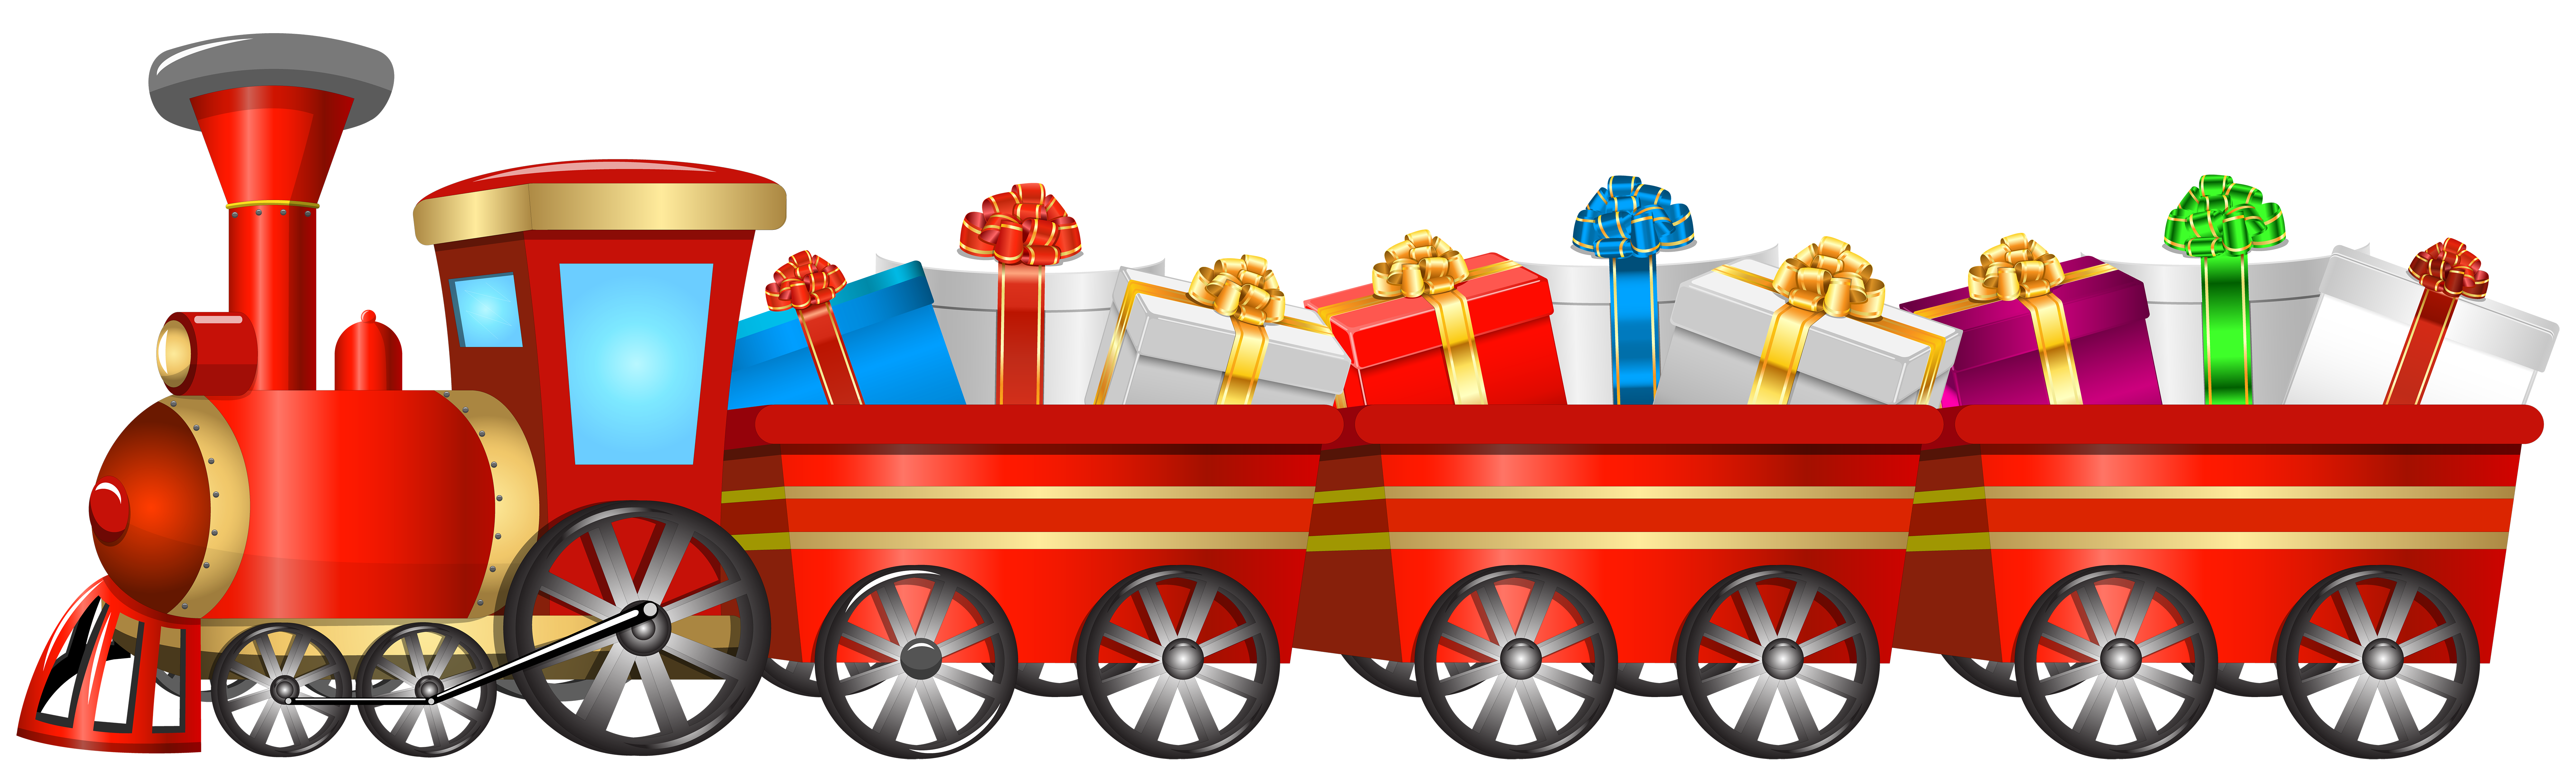 Christmas vacation clipart svg transparent stock Free Christmas Train Cliparts, Download Free Clip Art, Free Clip Art ... svg transparent stock